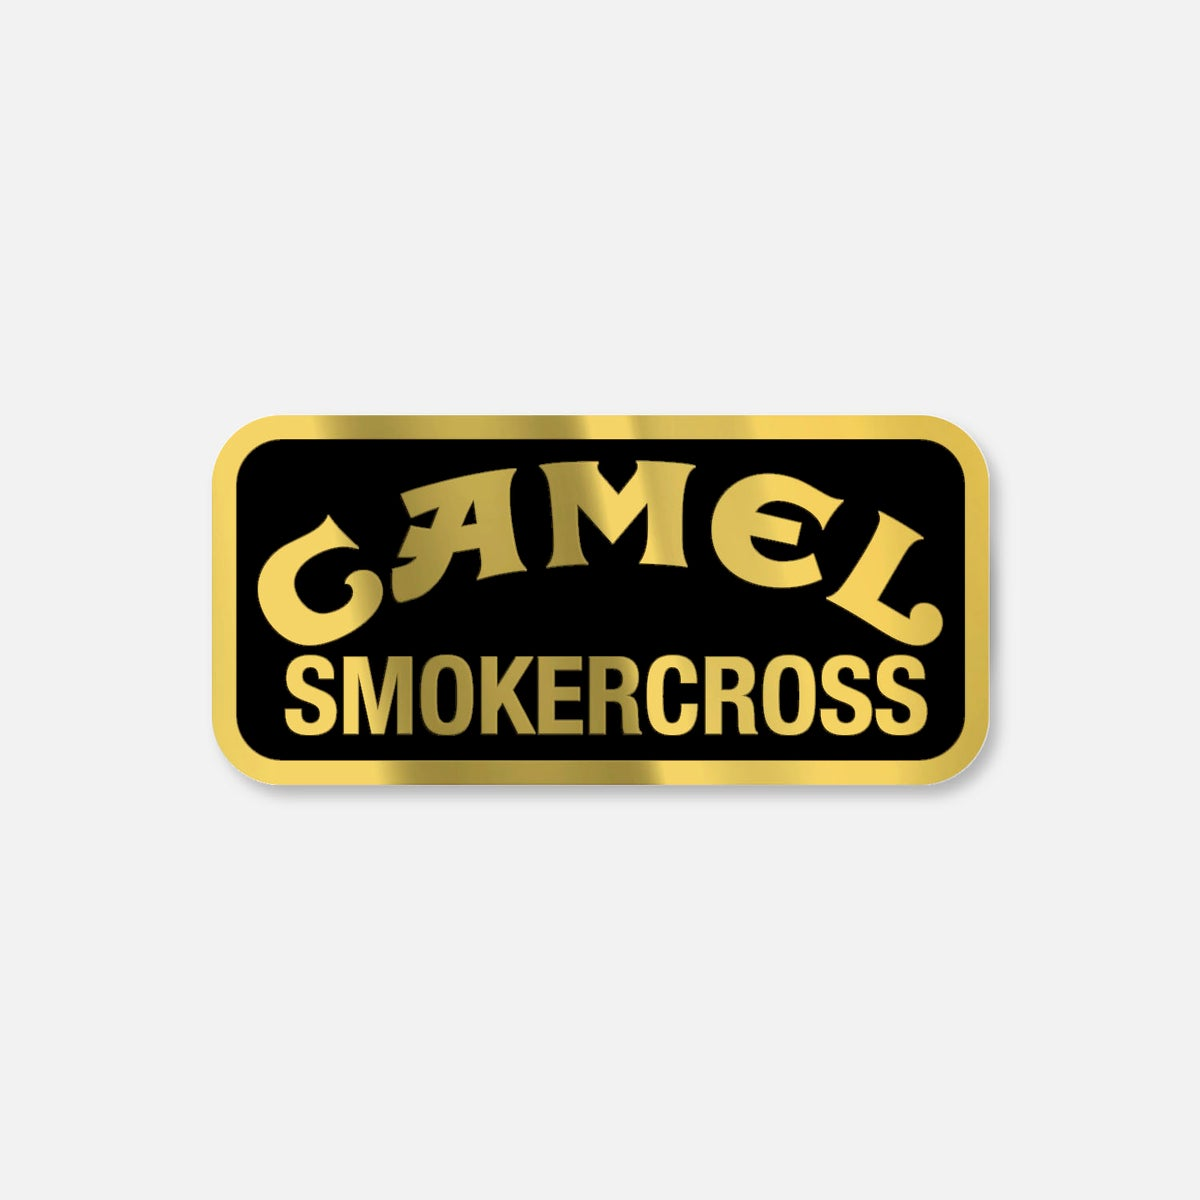 Image of CAMEL SMOKERCROSS PIN